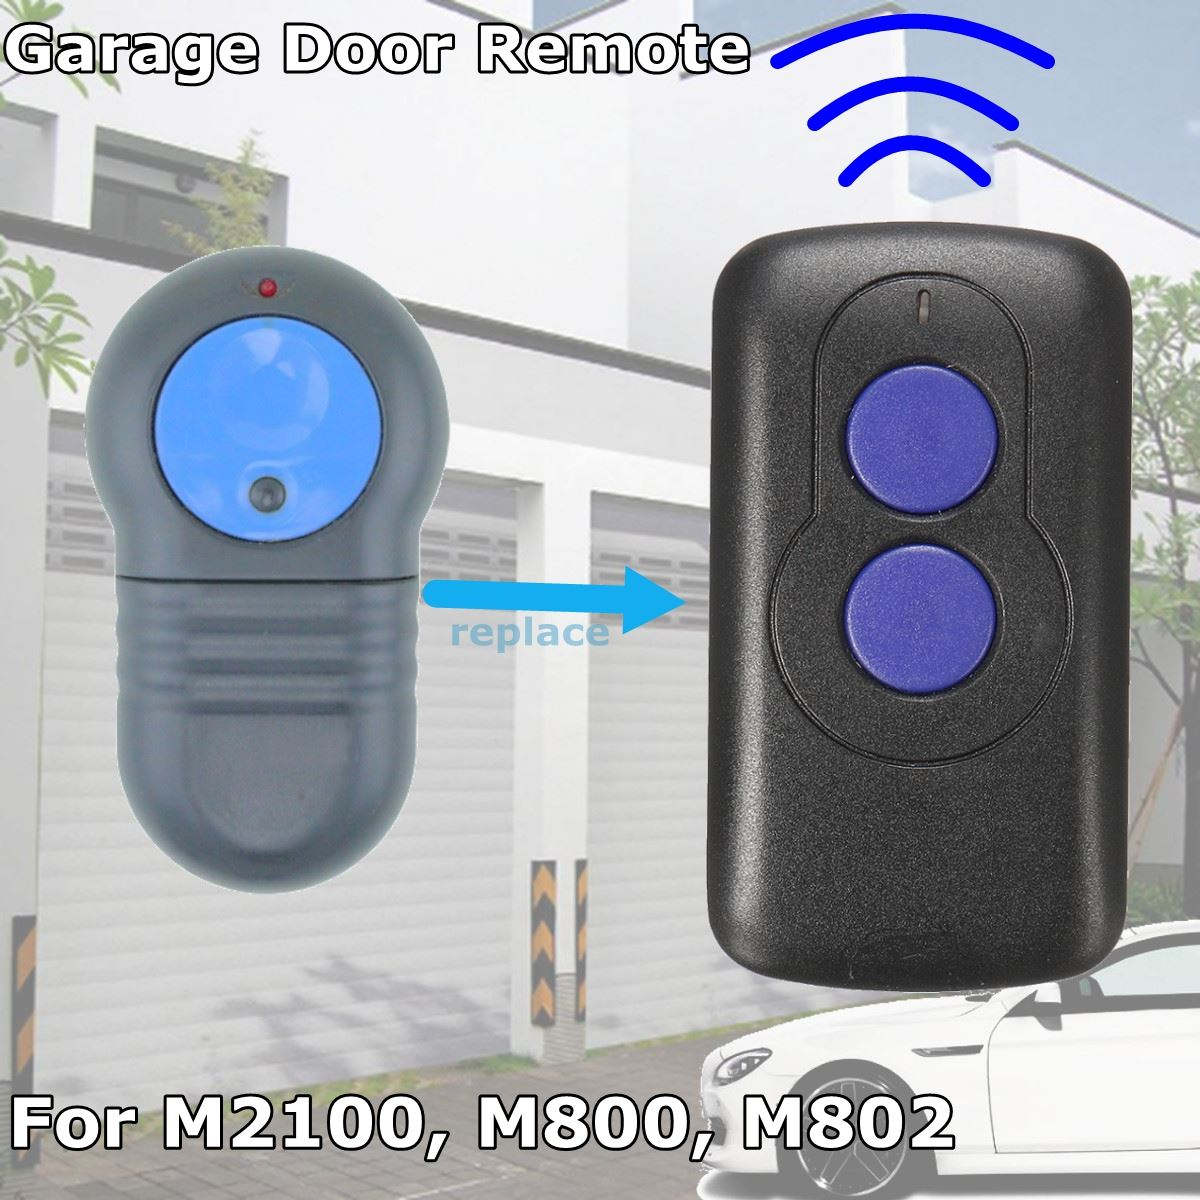 40.685Mhz Replacement Garage Door Gate Remote Control Transmitter Electric Duplicator For Merlin M802 new nova centurion blue gate garage remote control replacement